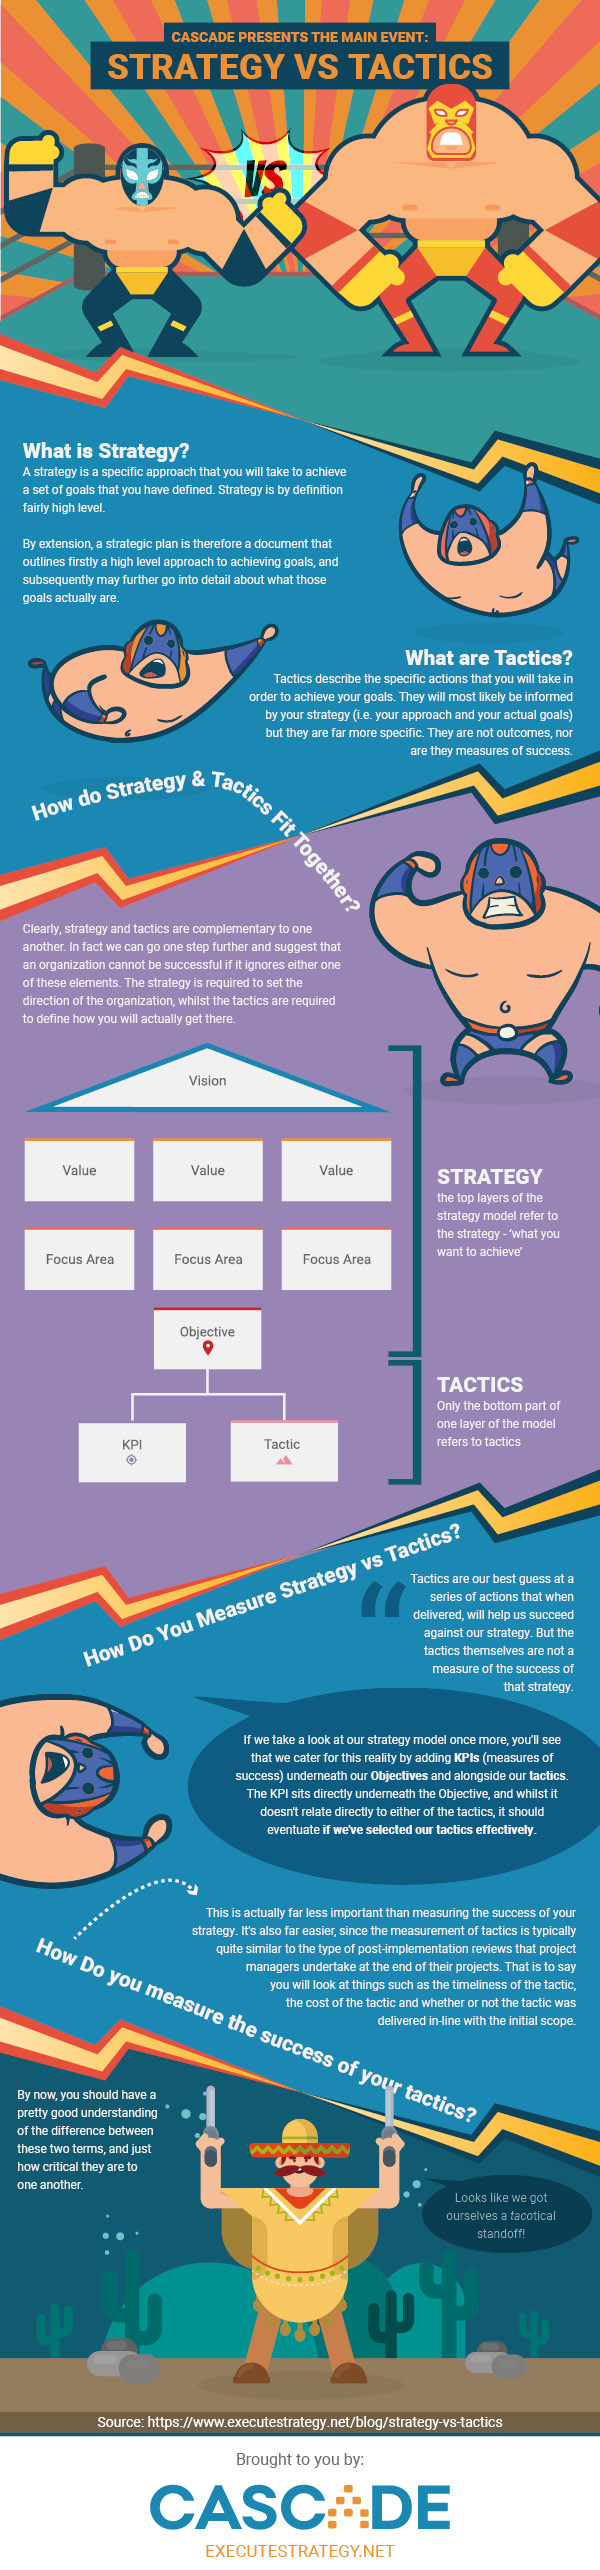 Strategy vs tactics infographic